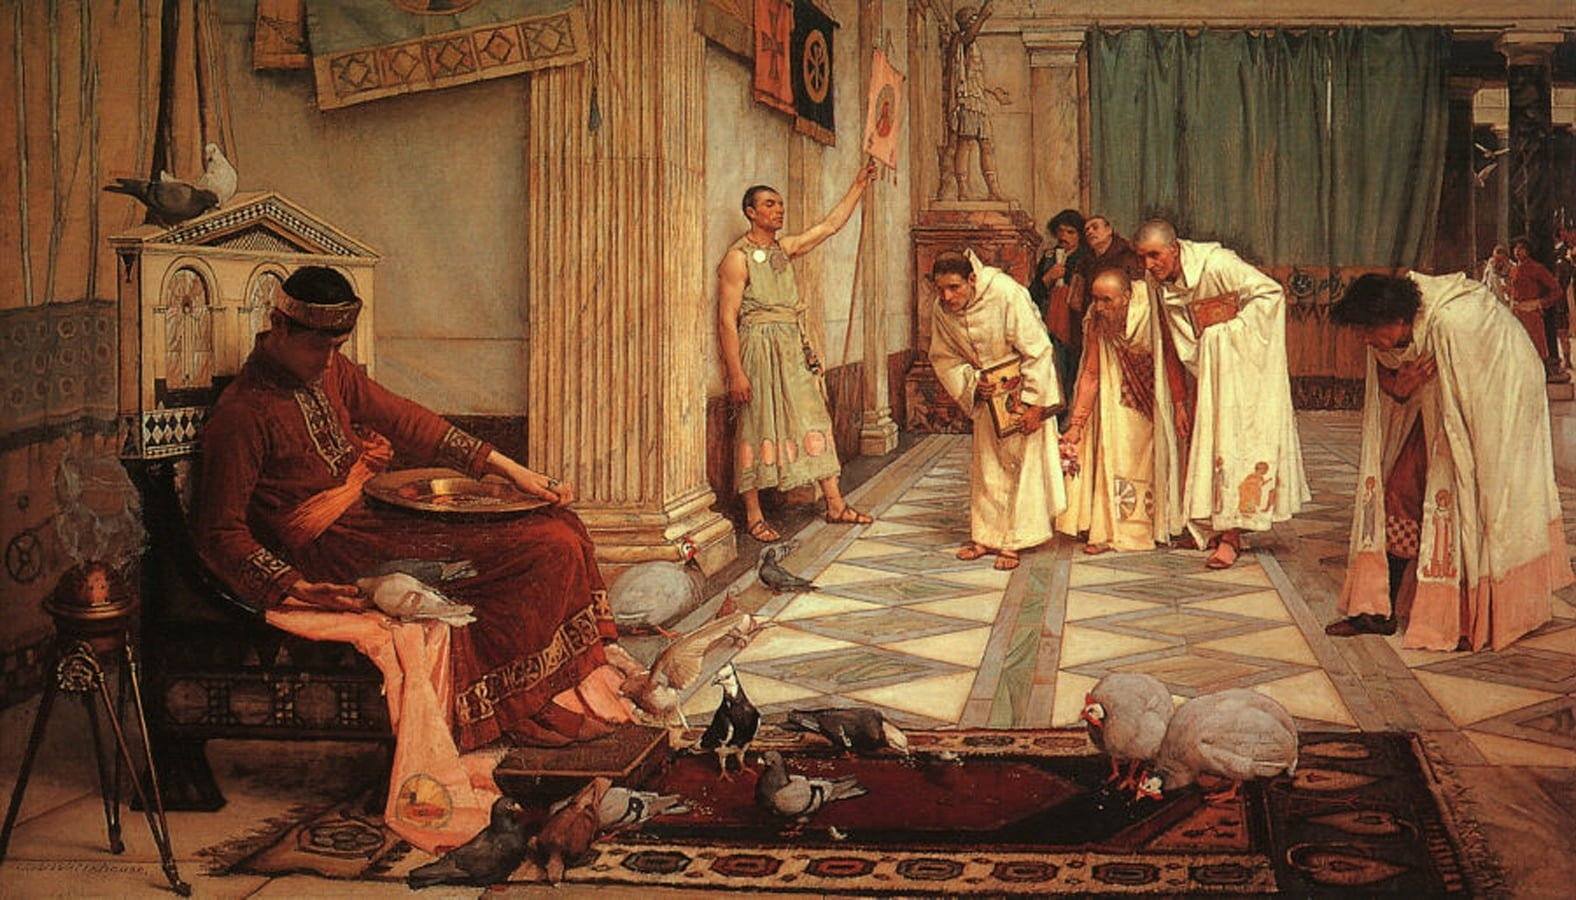 John William Waterhouse, The Favorites of Emperor Honorius